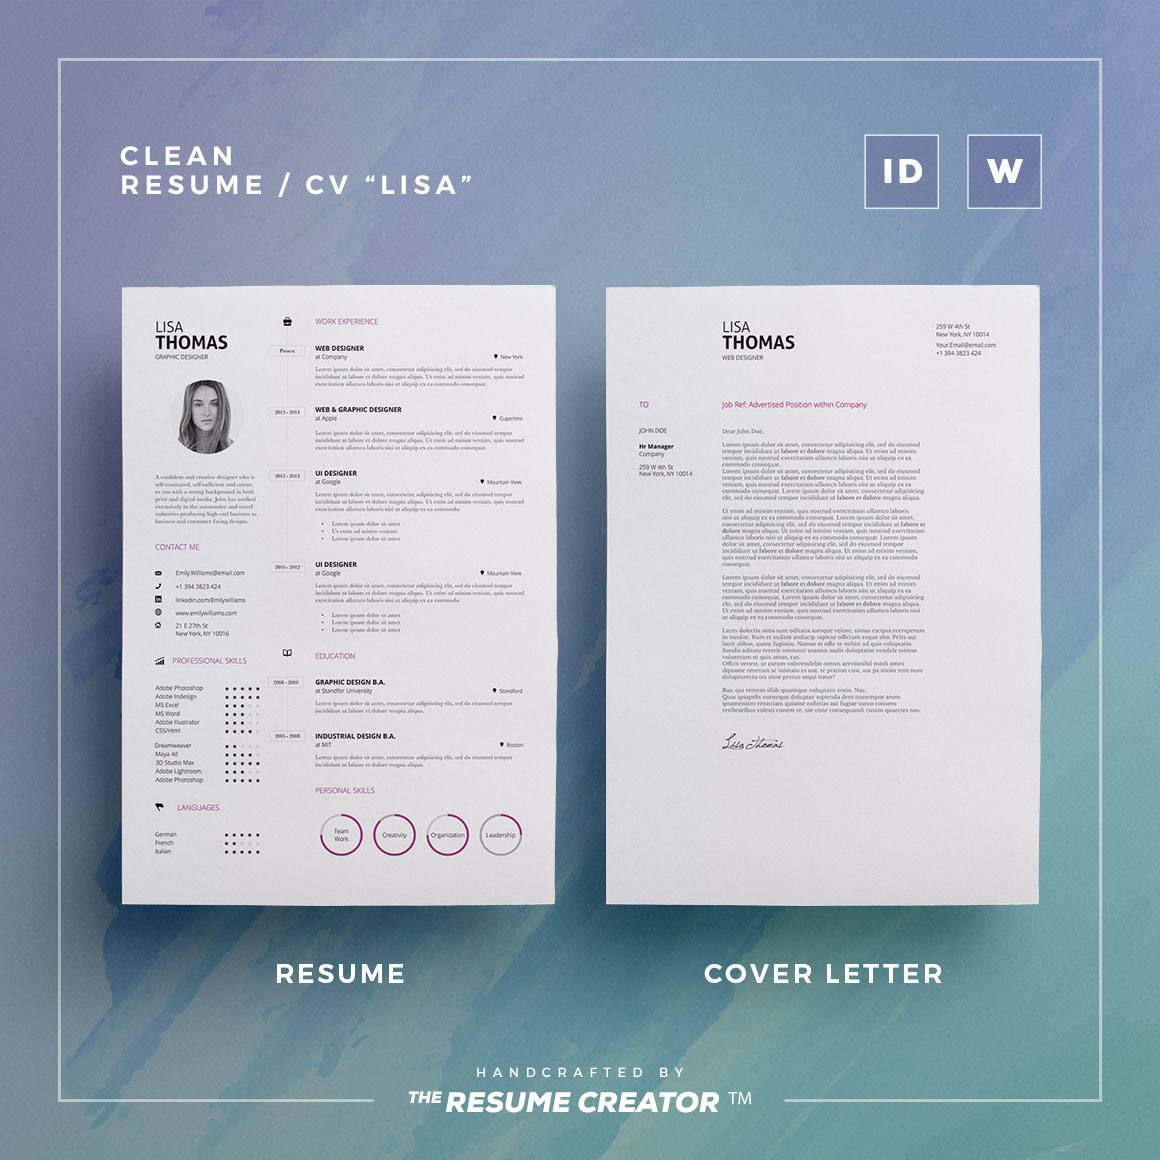 Clean ResumeCv Lisa  Word And Indesign Template  Professional